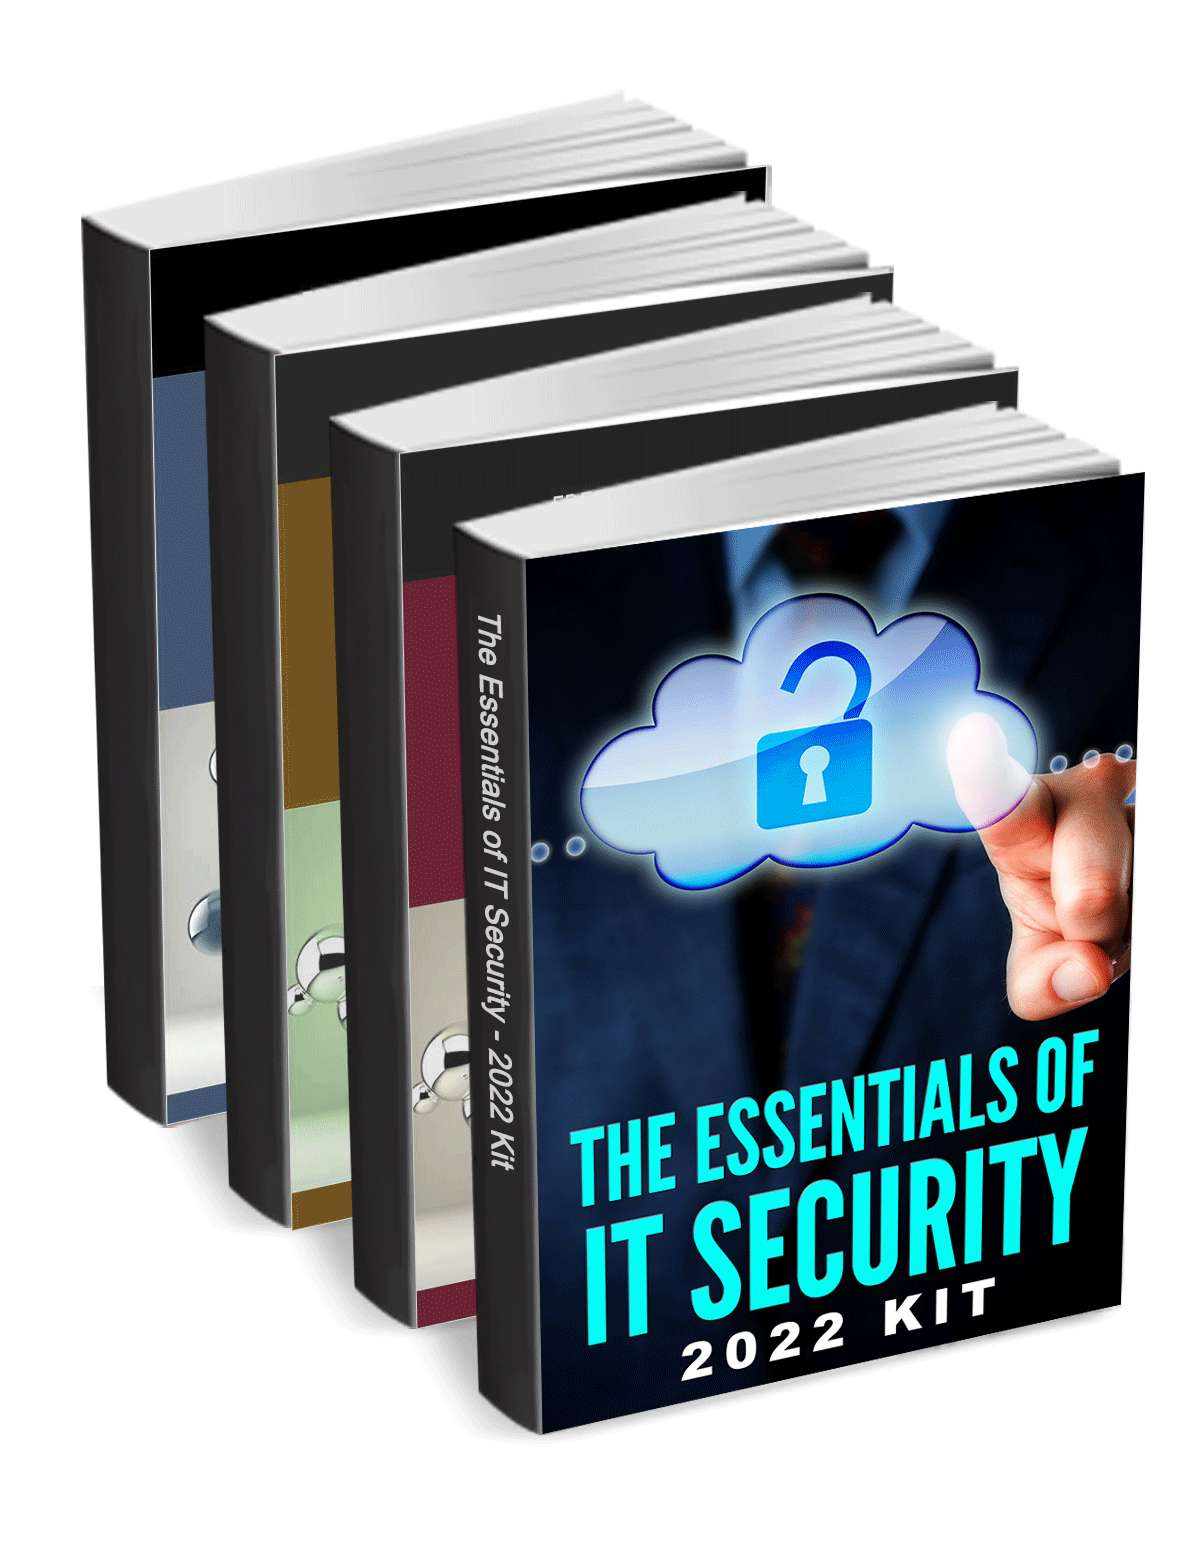 The Essentials of IT Security - Fall 2018 Kit